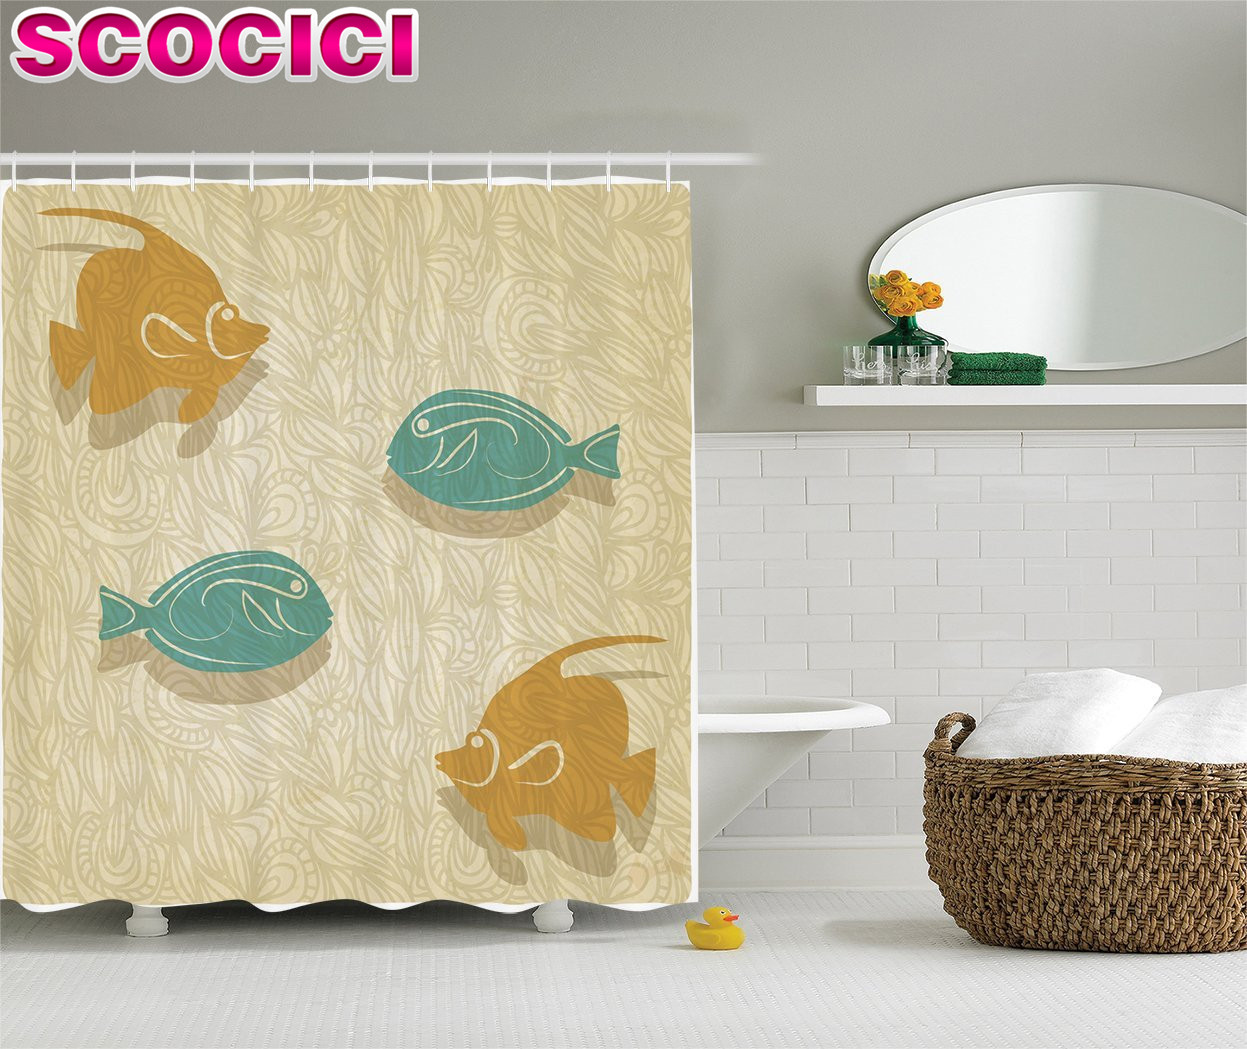 Bathroom Fish Decor Popular Aquarium Bathroom Decor Buy Cheap Aquarium Bathroom Decor